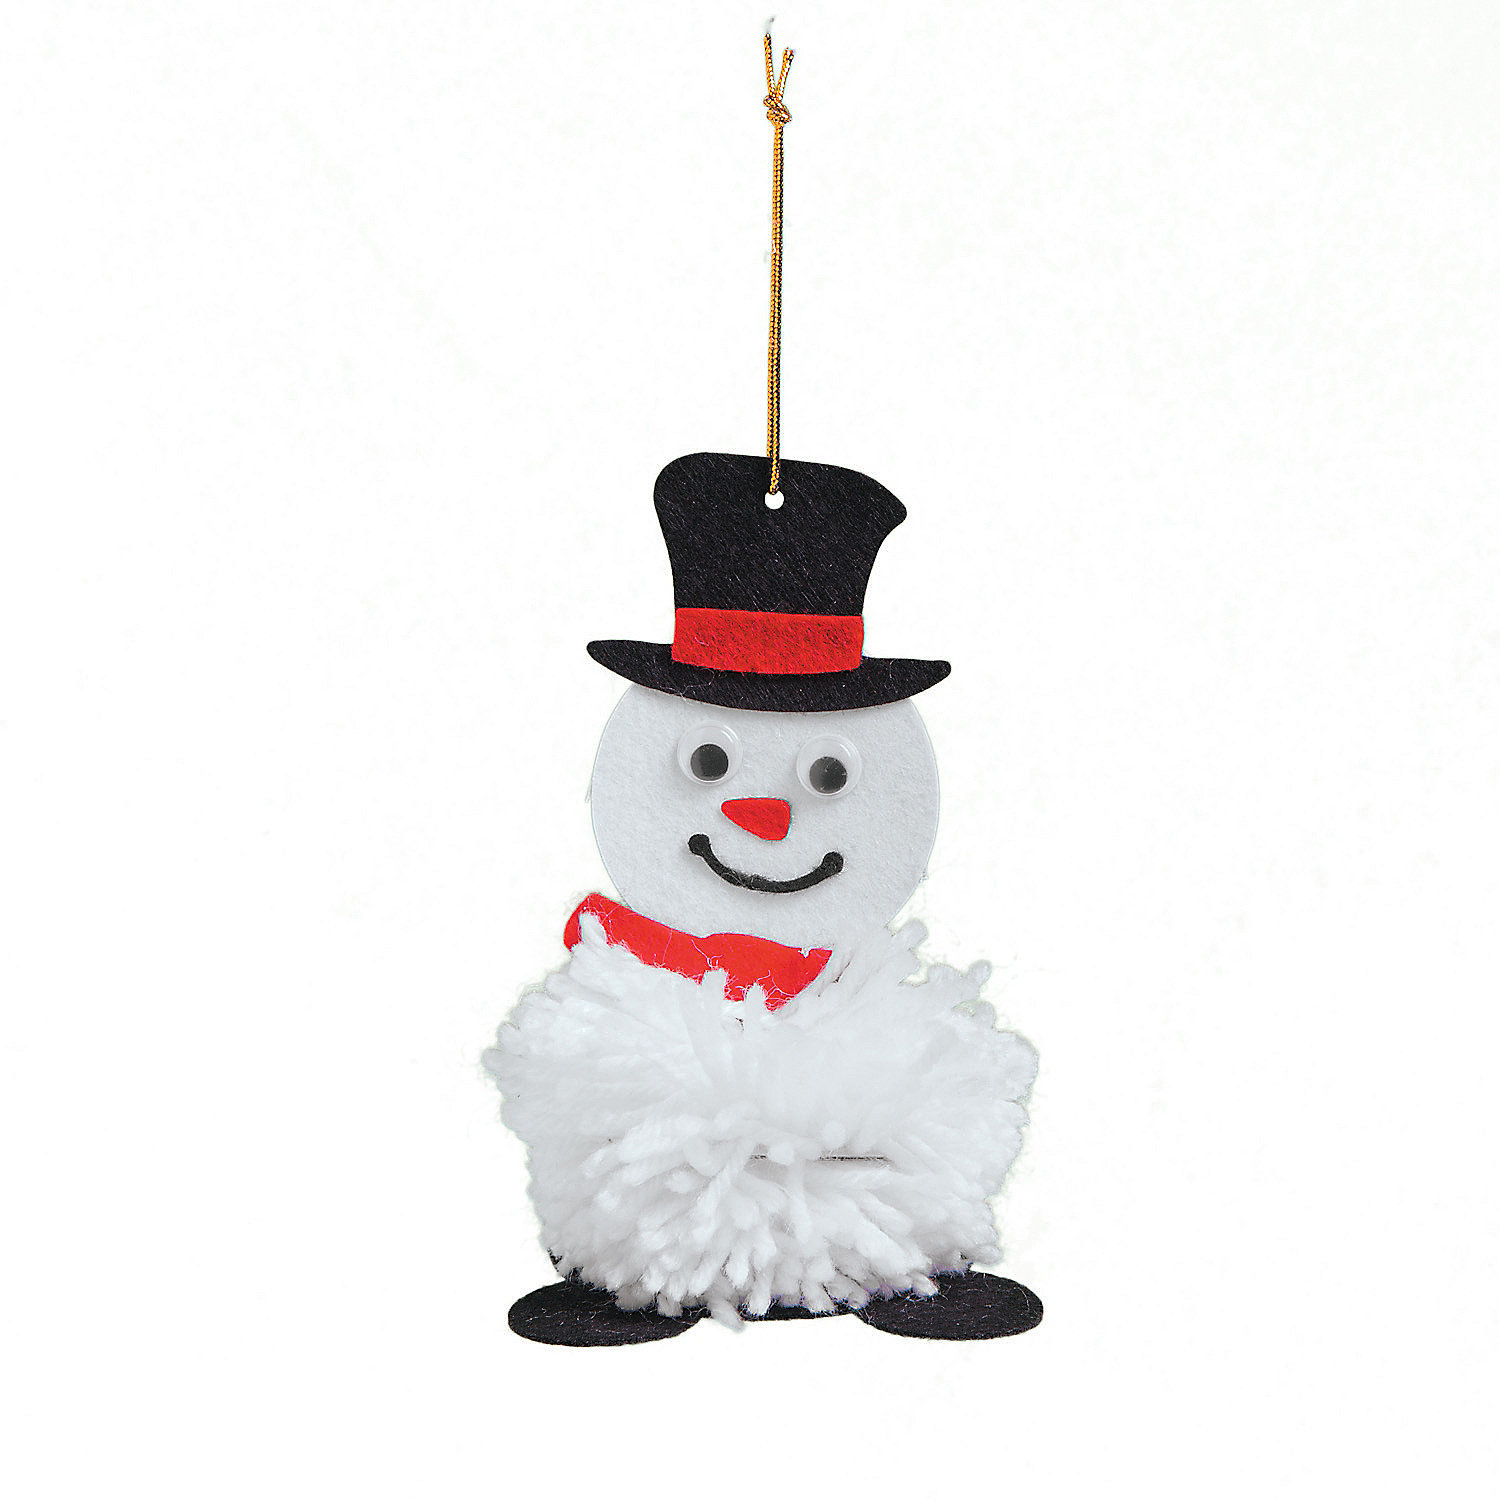 The Pom Pom Ornament Craft That Never Ends: Pom-Pom Snowman Ornament Craft Kit